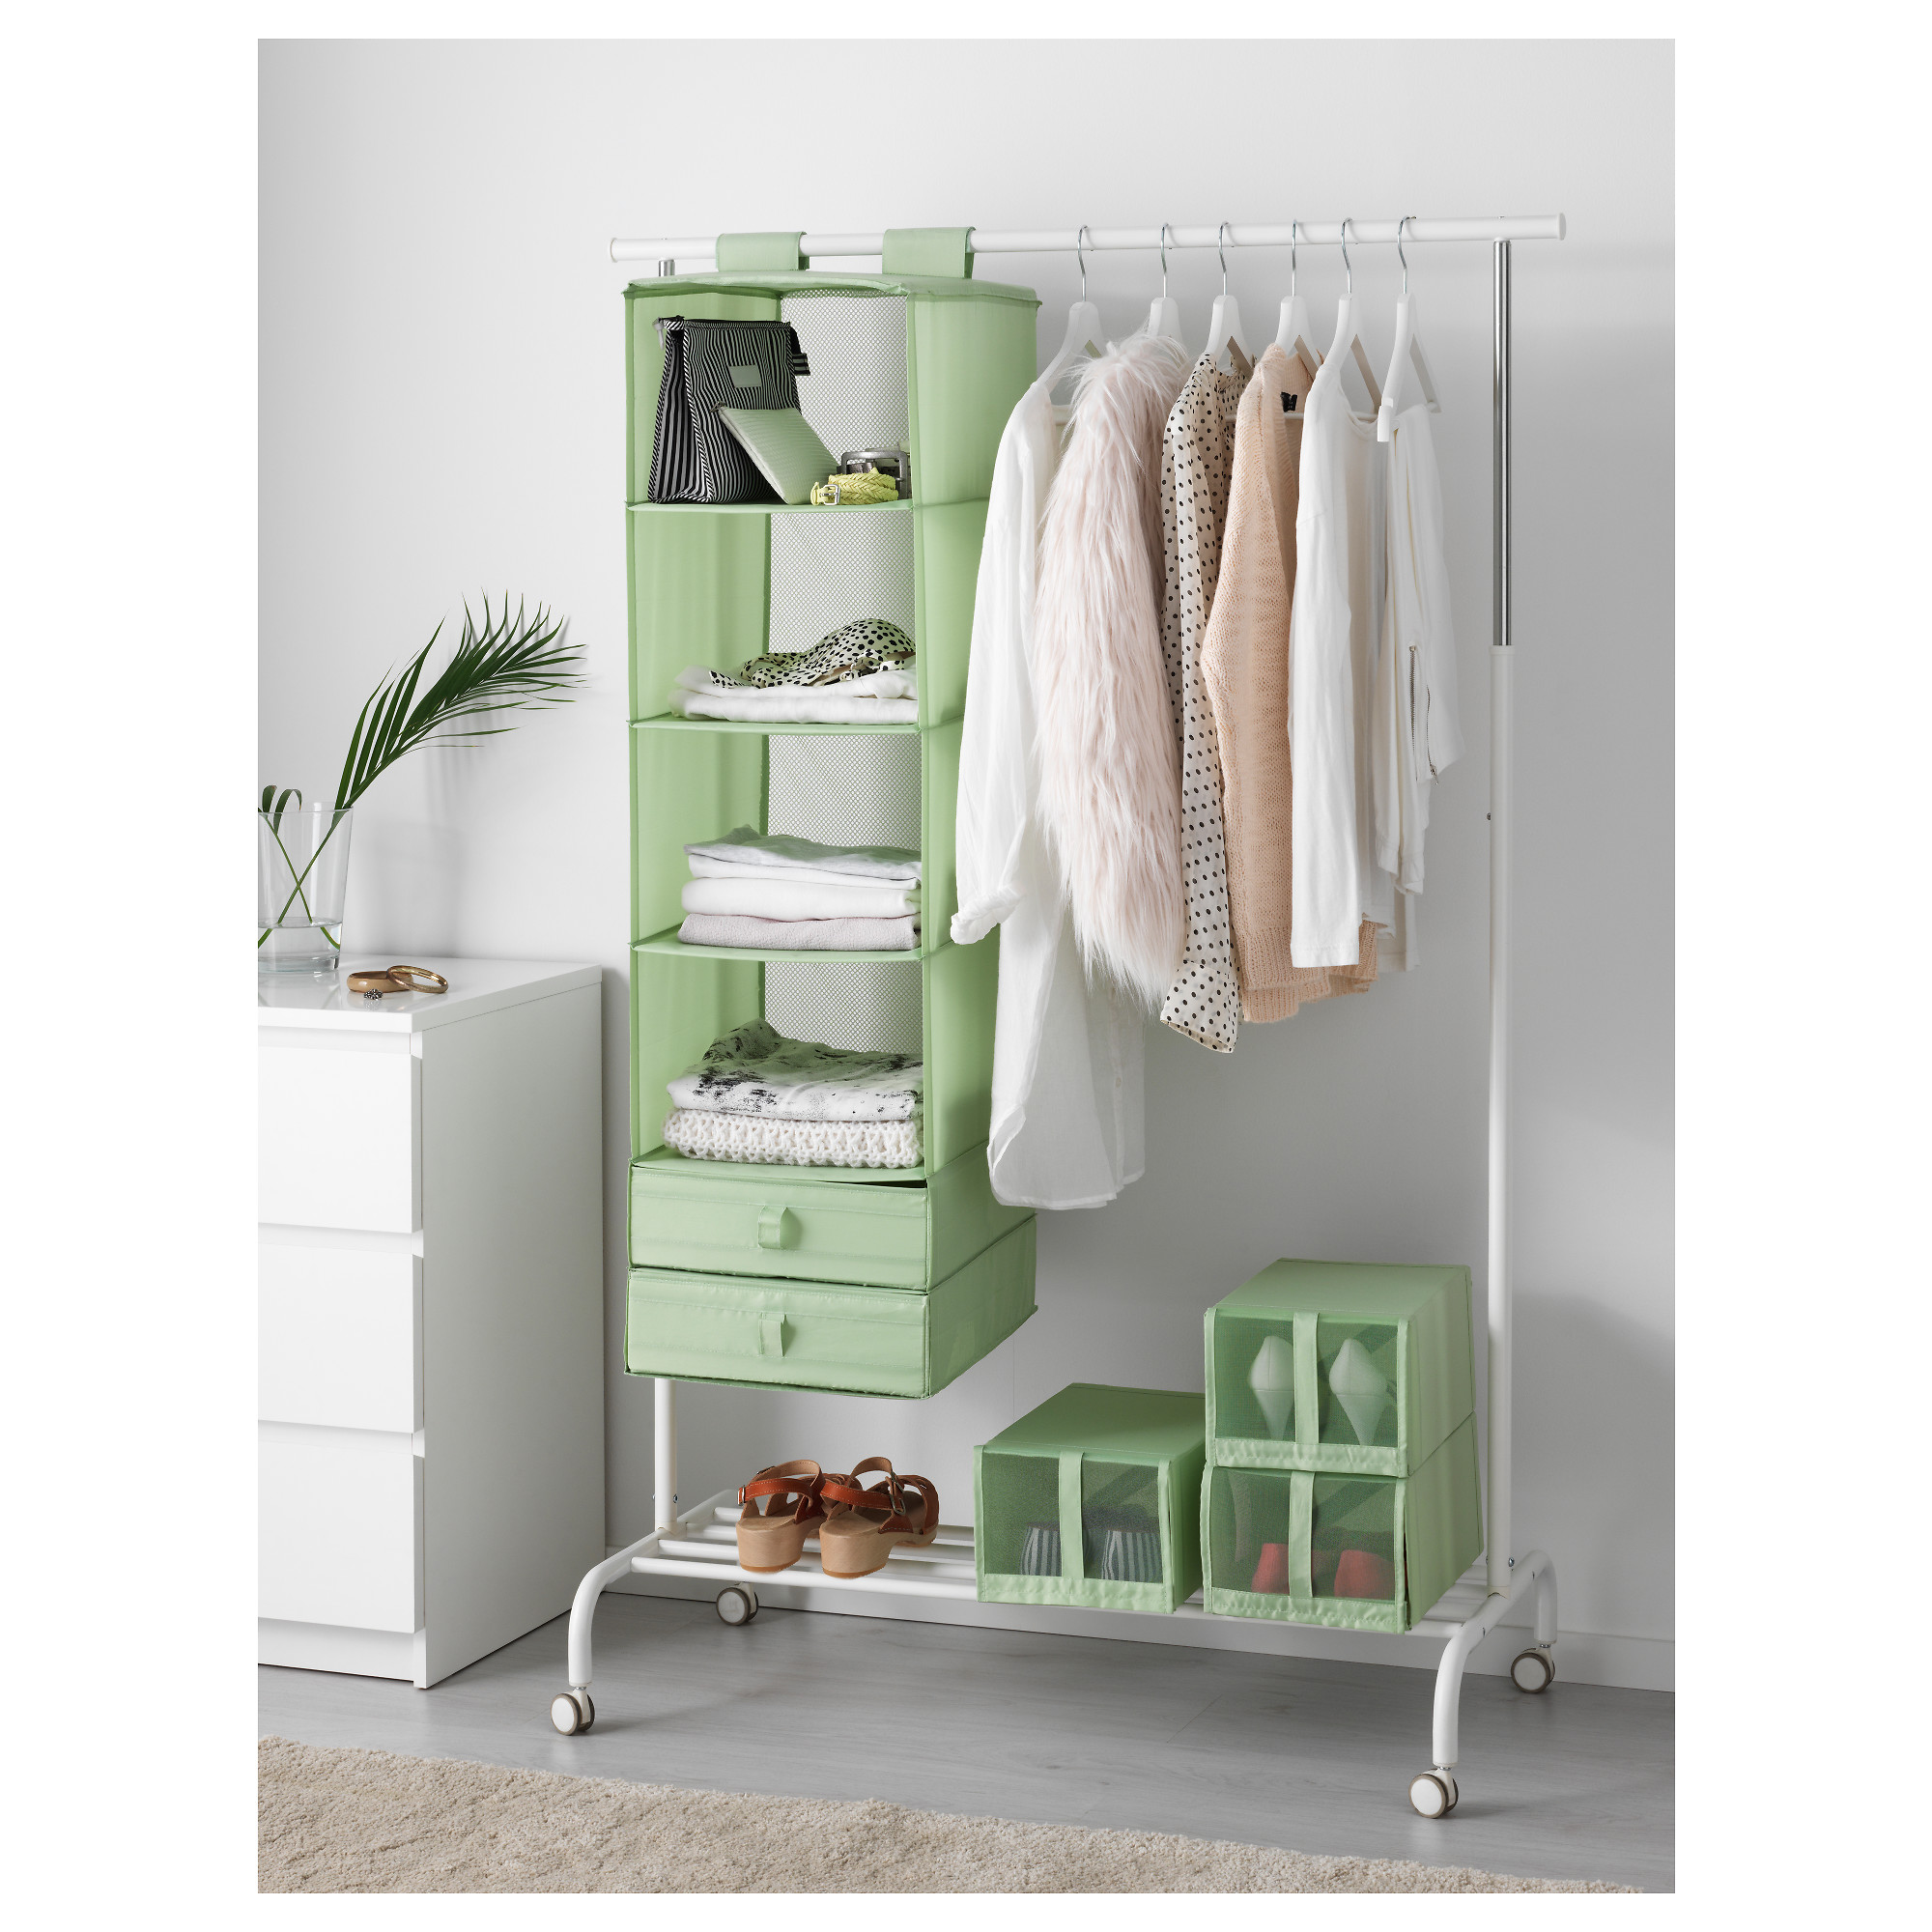 Hanging Cubbies To Winter Clothes Purses And Clutches Easy Storage For Small